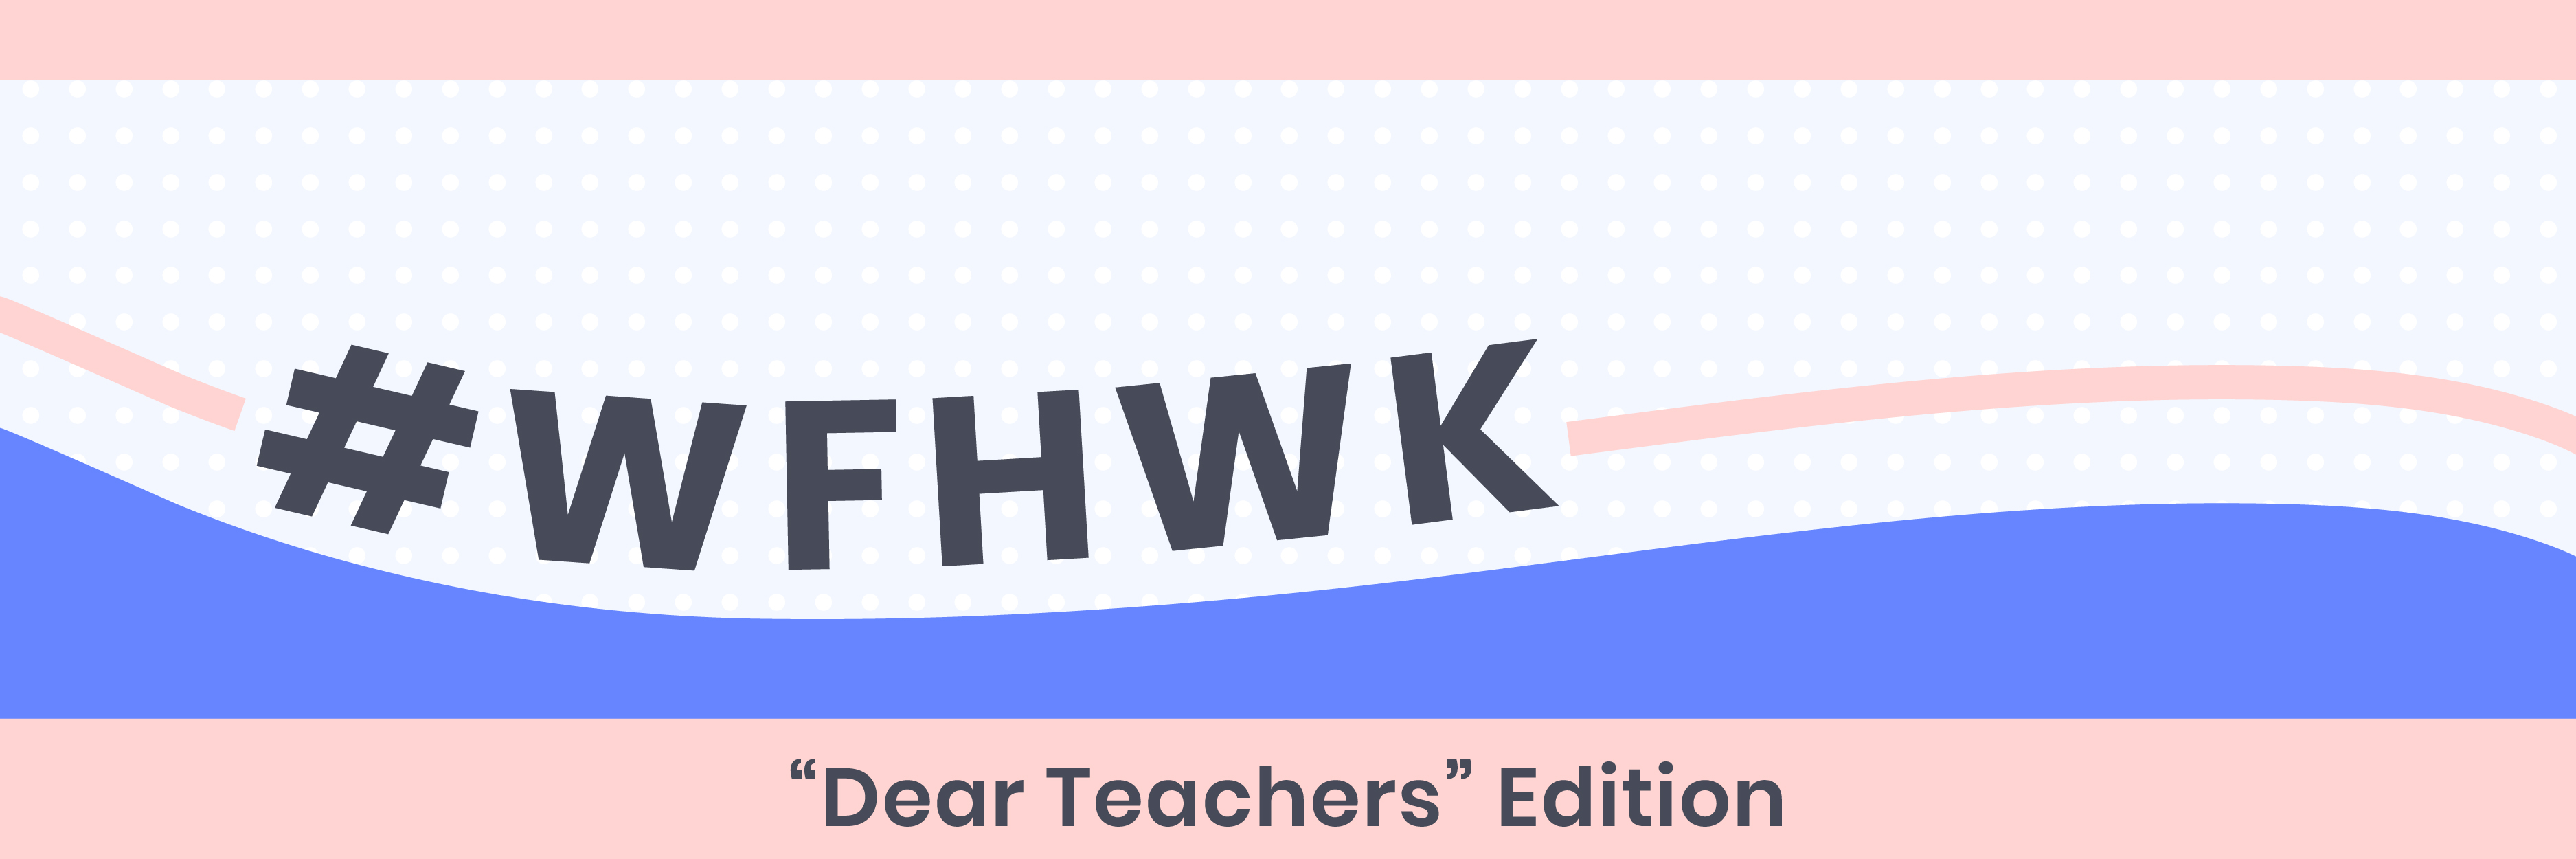 #WFHWK: Dear Teachers Edition